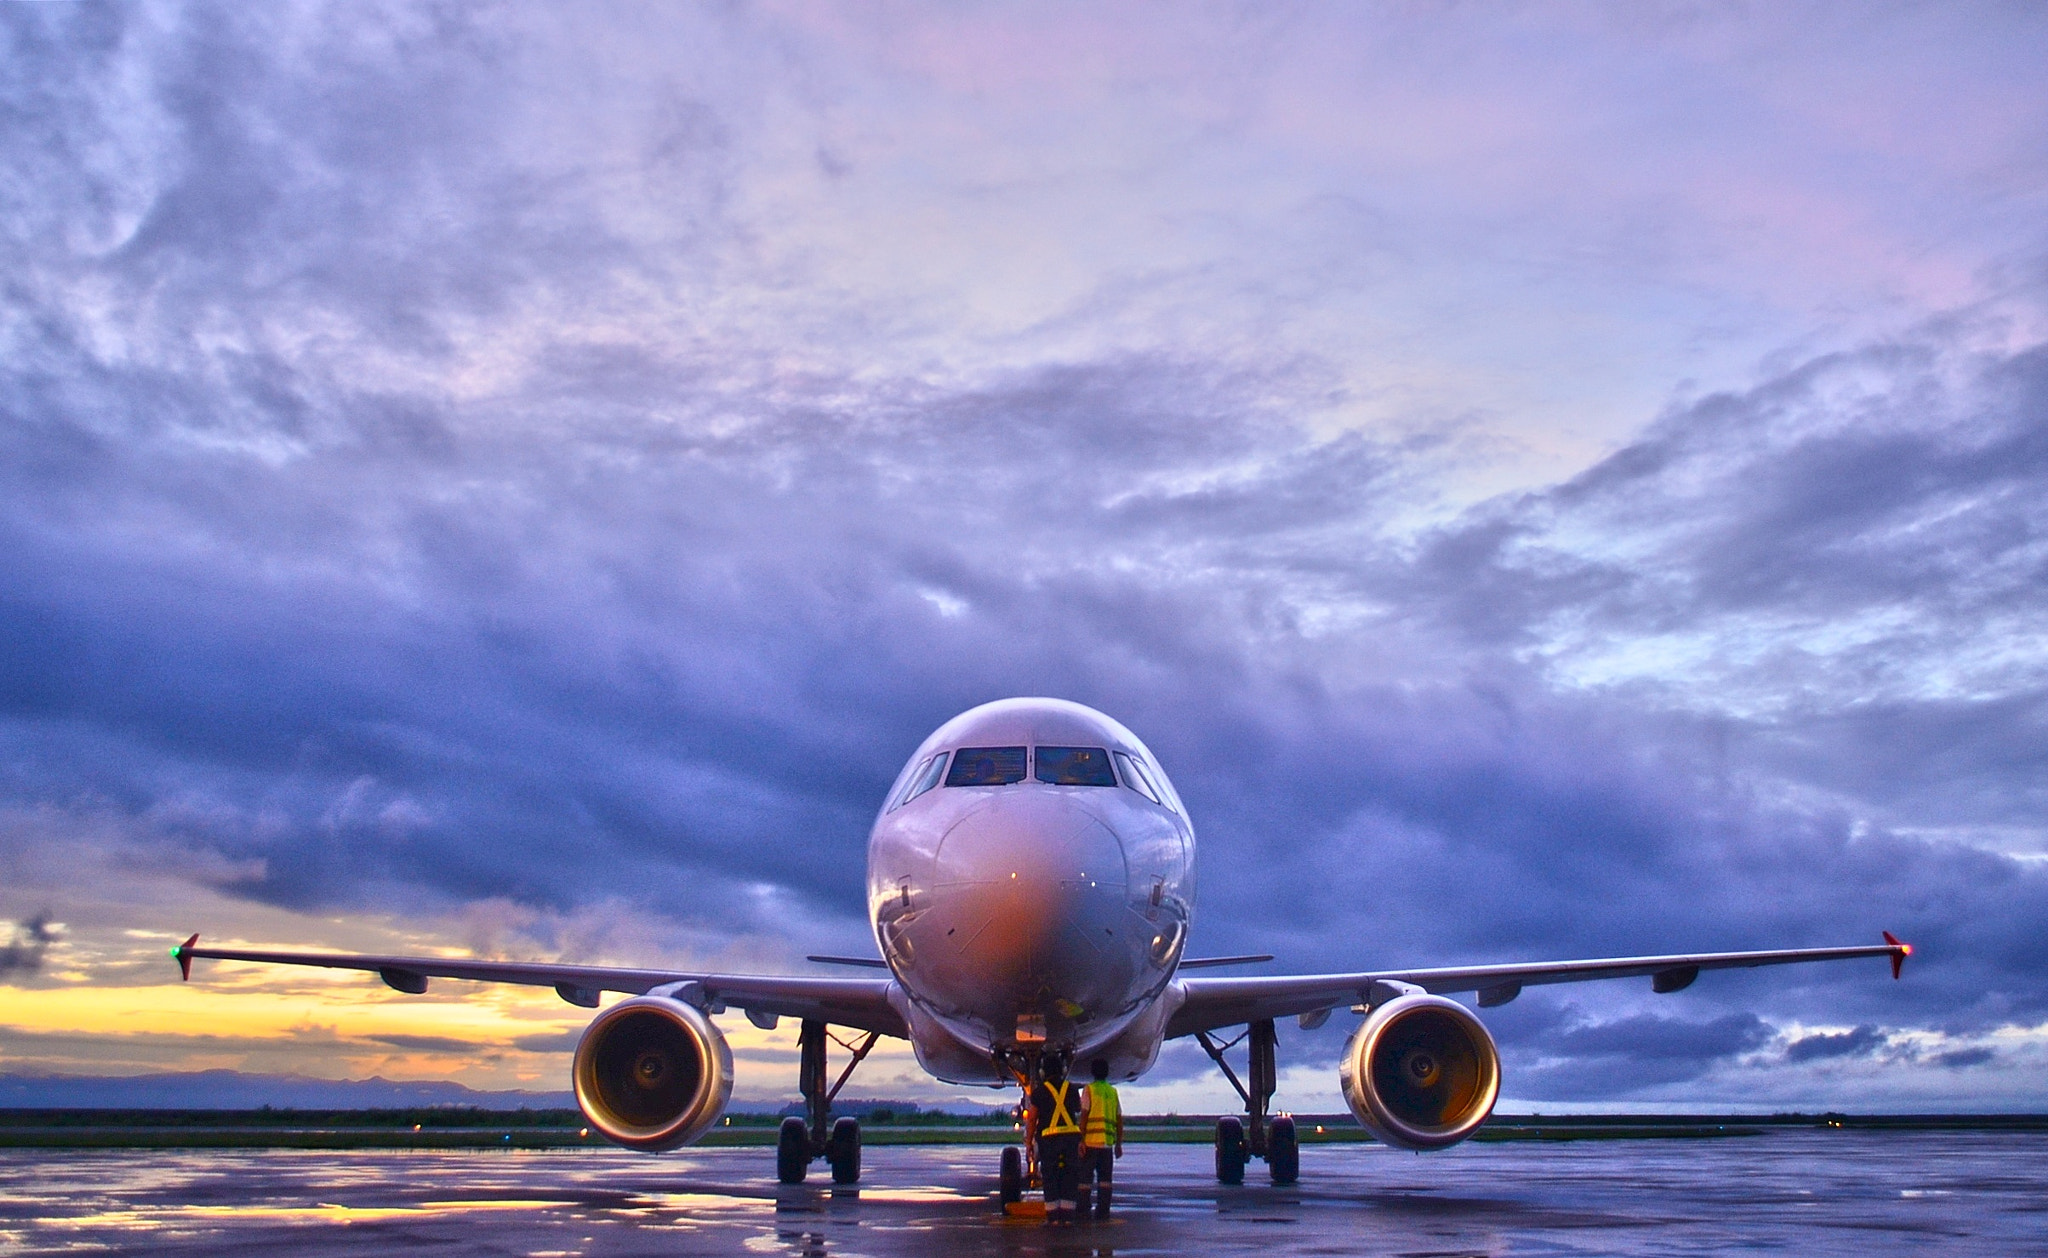 Photograph Airbus A220 by Vey Telmo on 500px